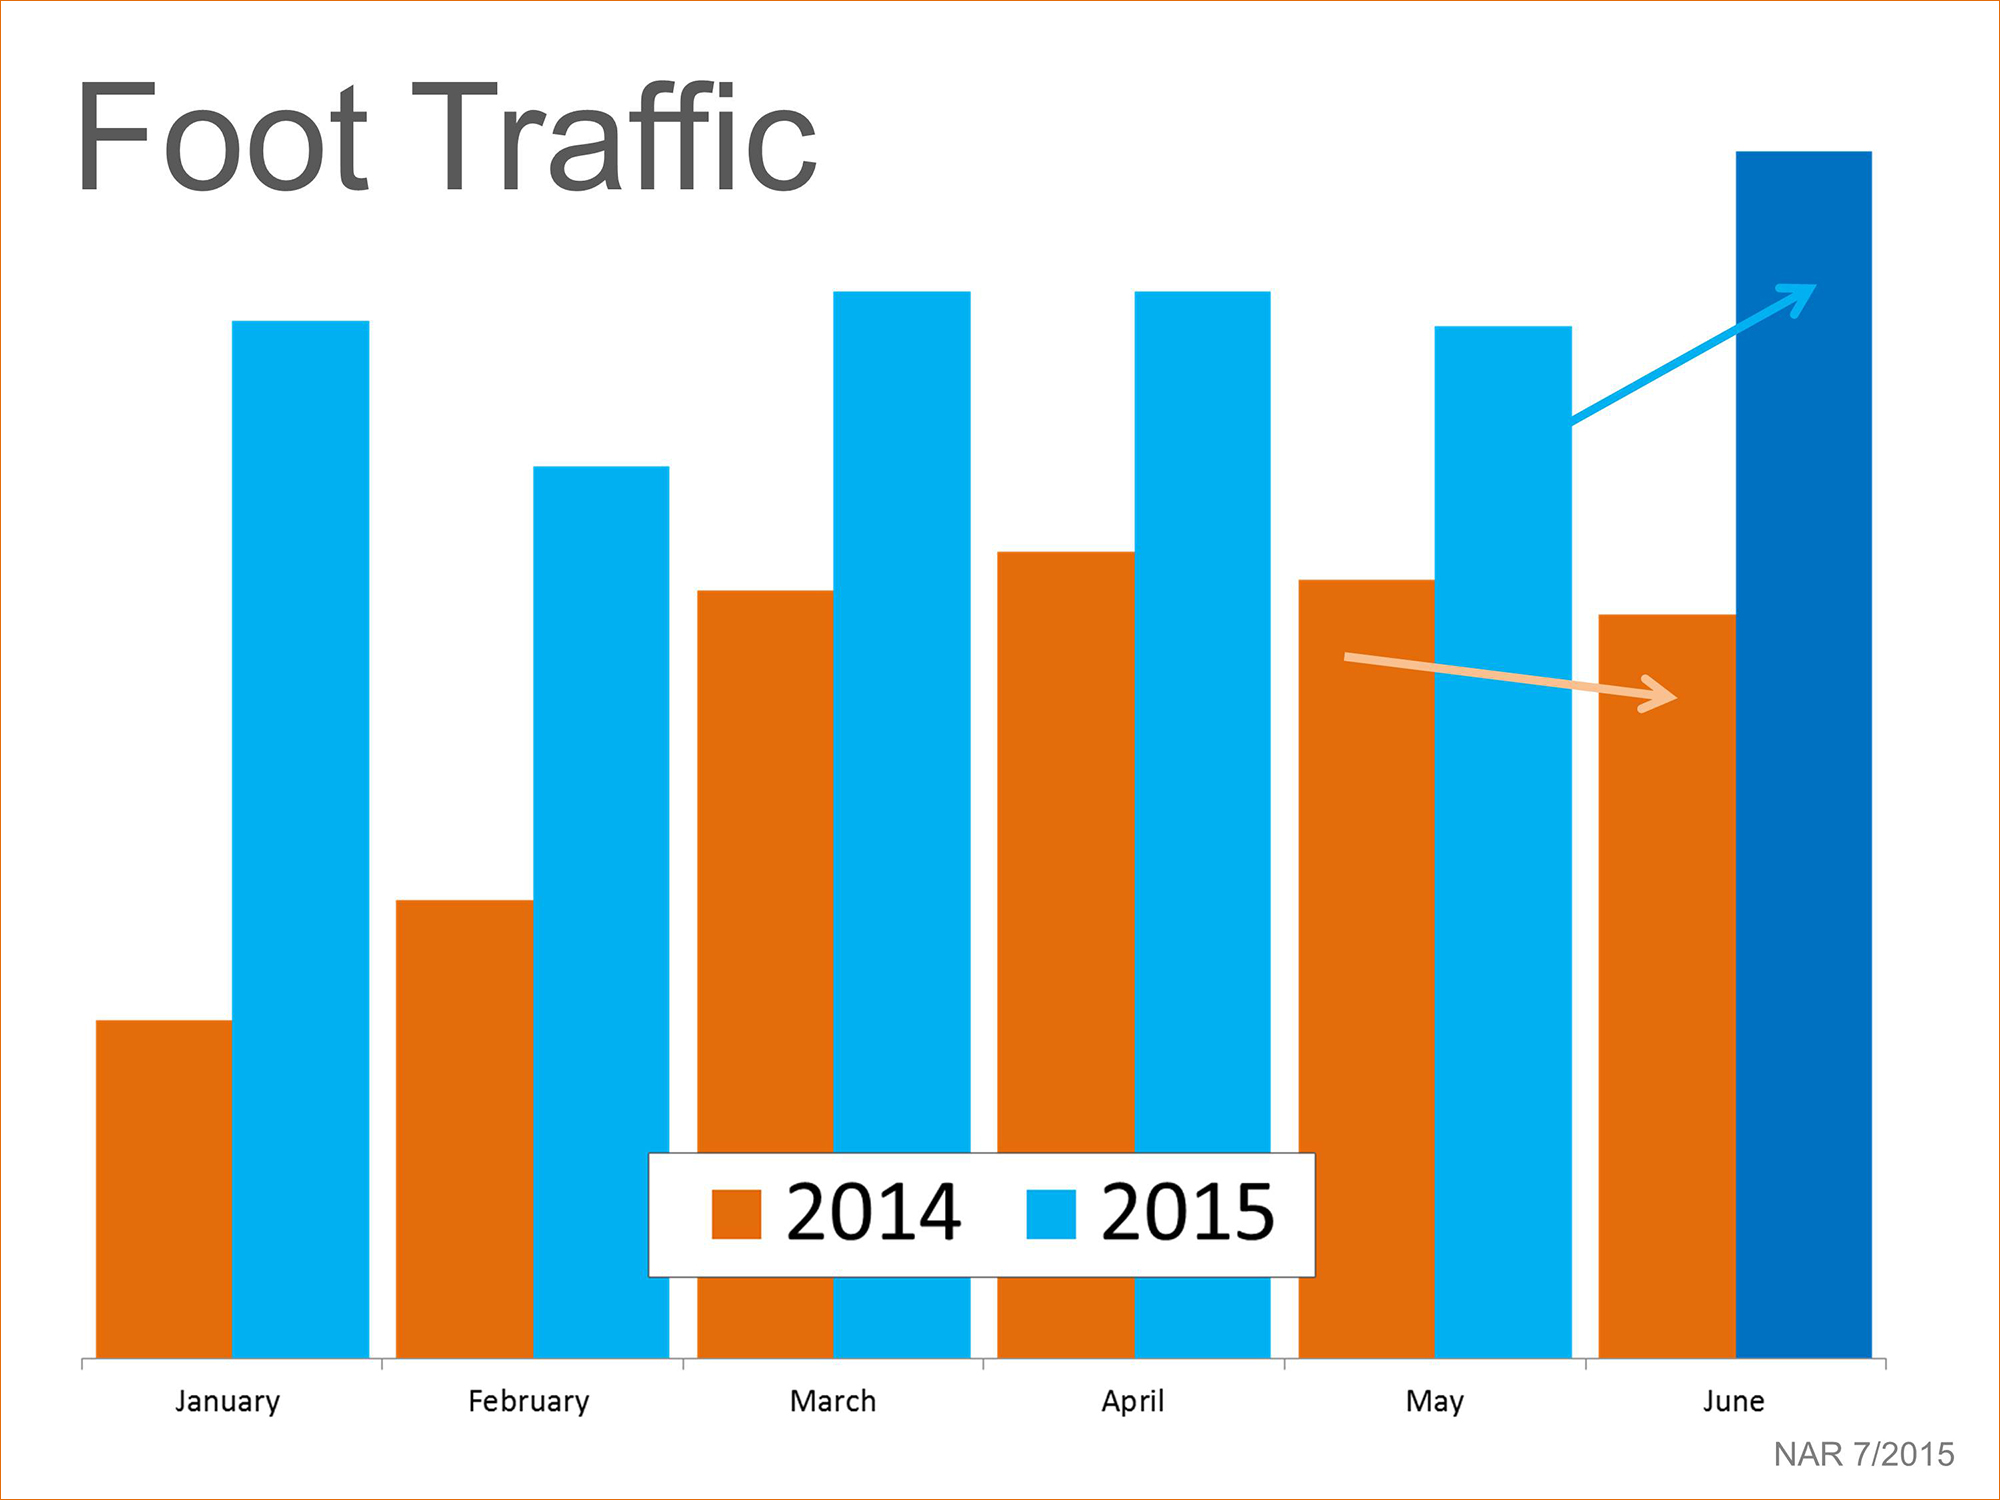 Foot Traffic Comparison | Simplifying The Market